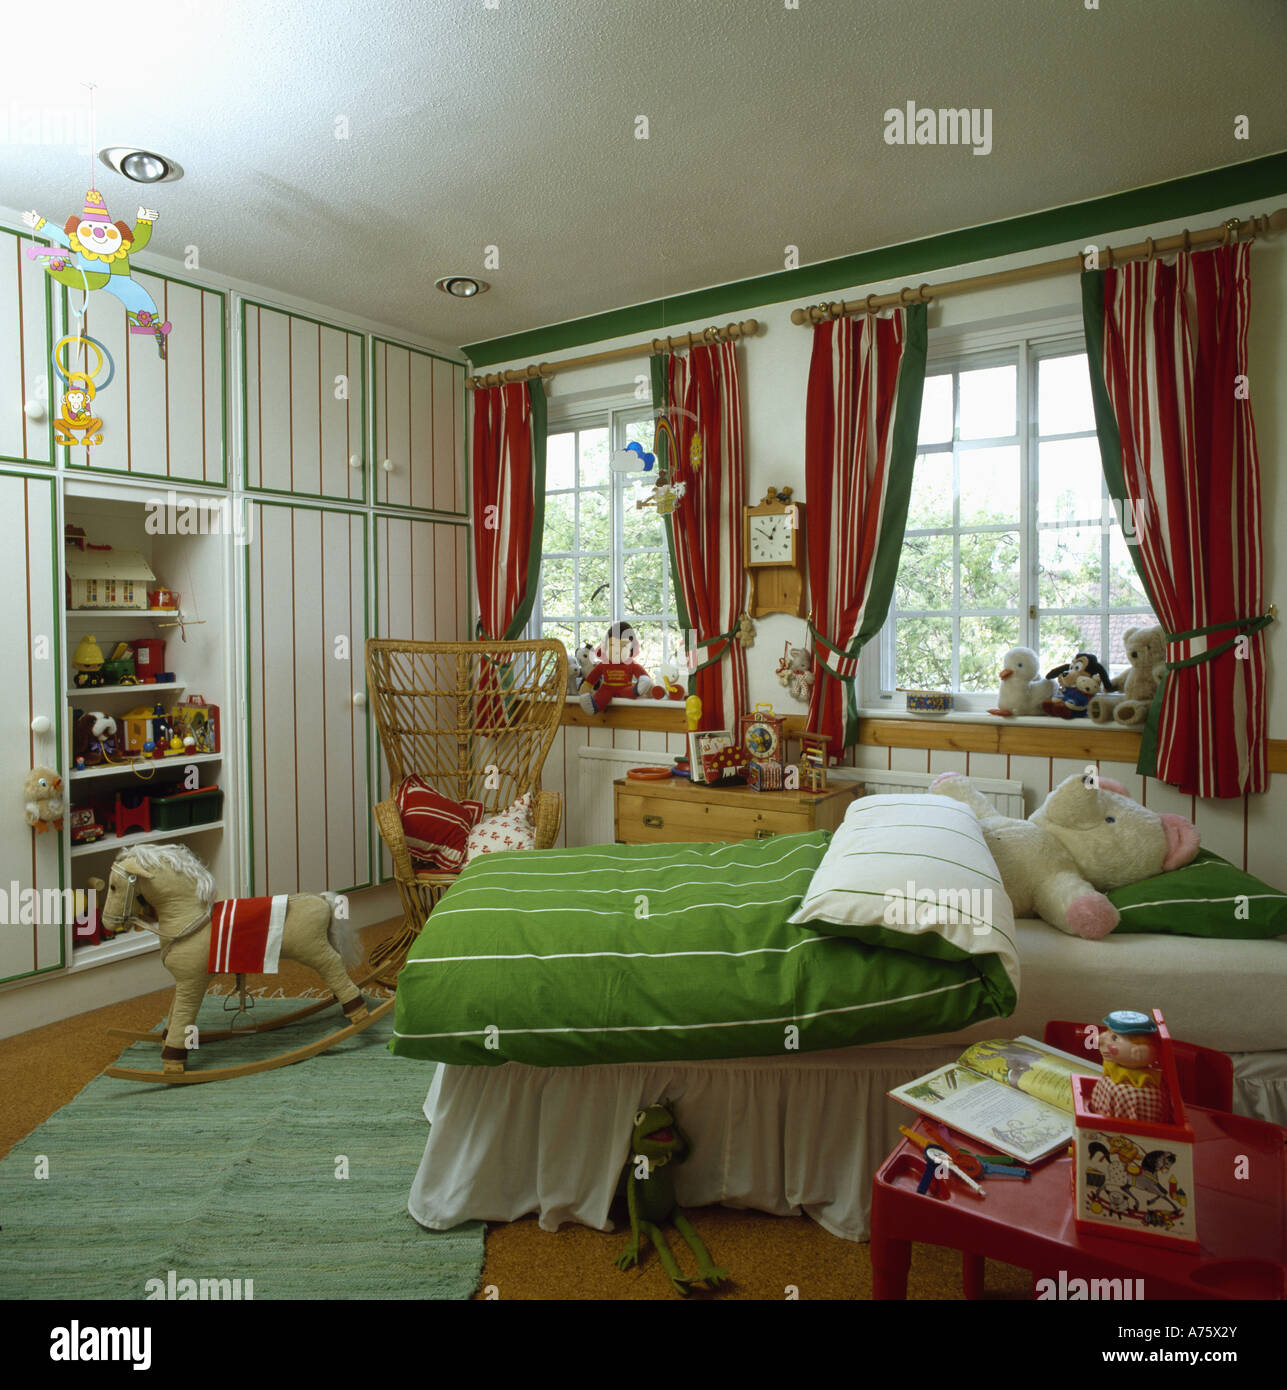 White Walls With Green Detail In Eighties Children S Bedroom With Green Duvet And Red Drapes Stock Photo Alamy